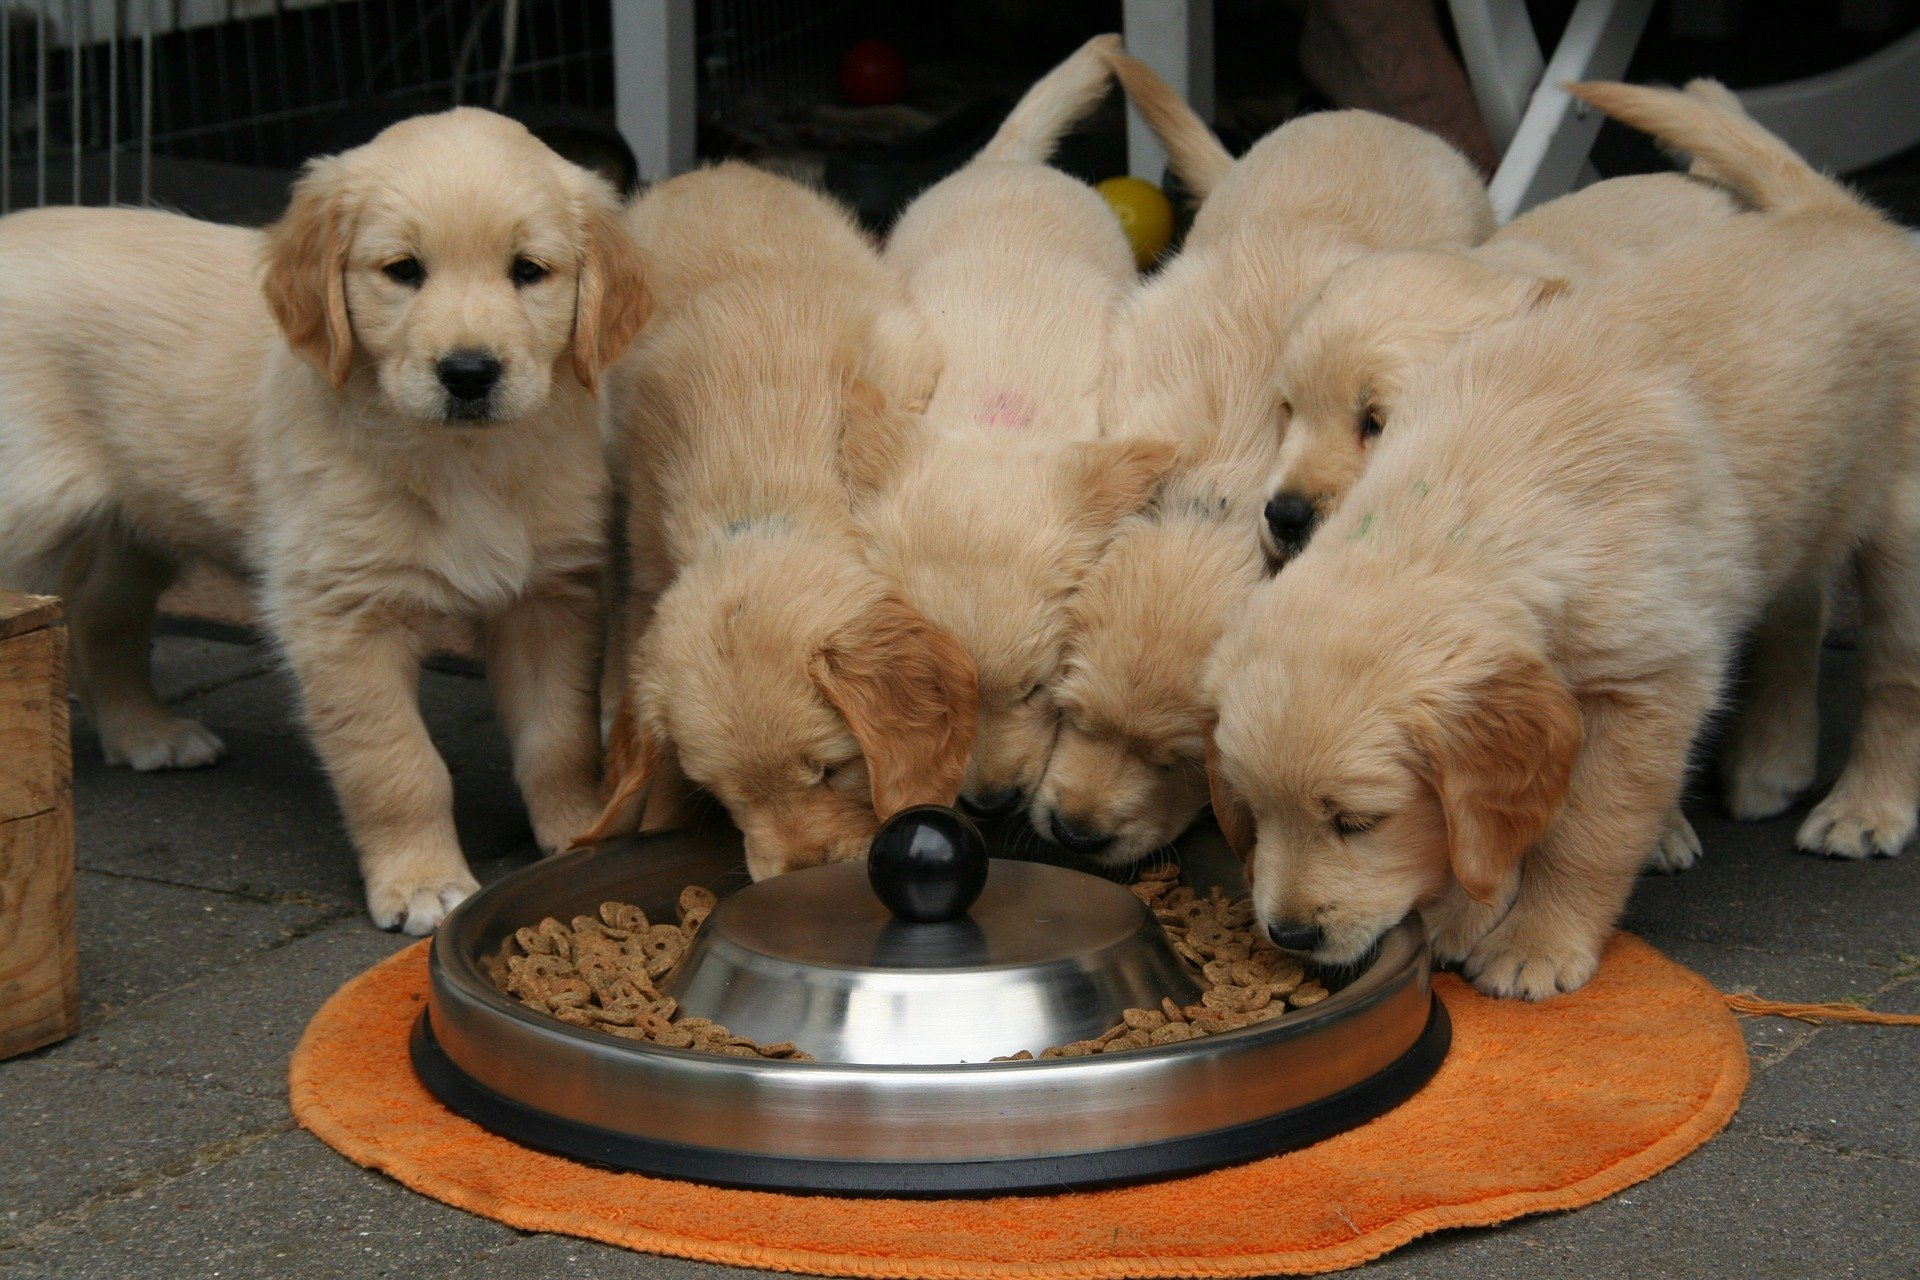 In the photo several Golden Retriever puppies eating feed.